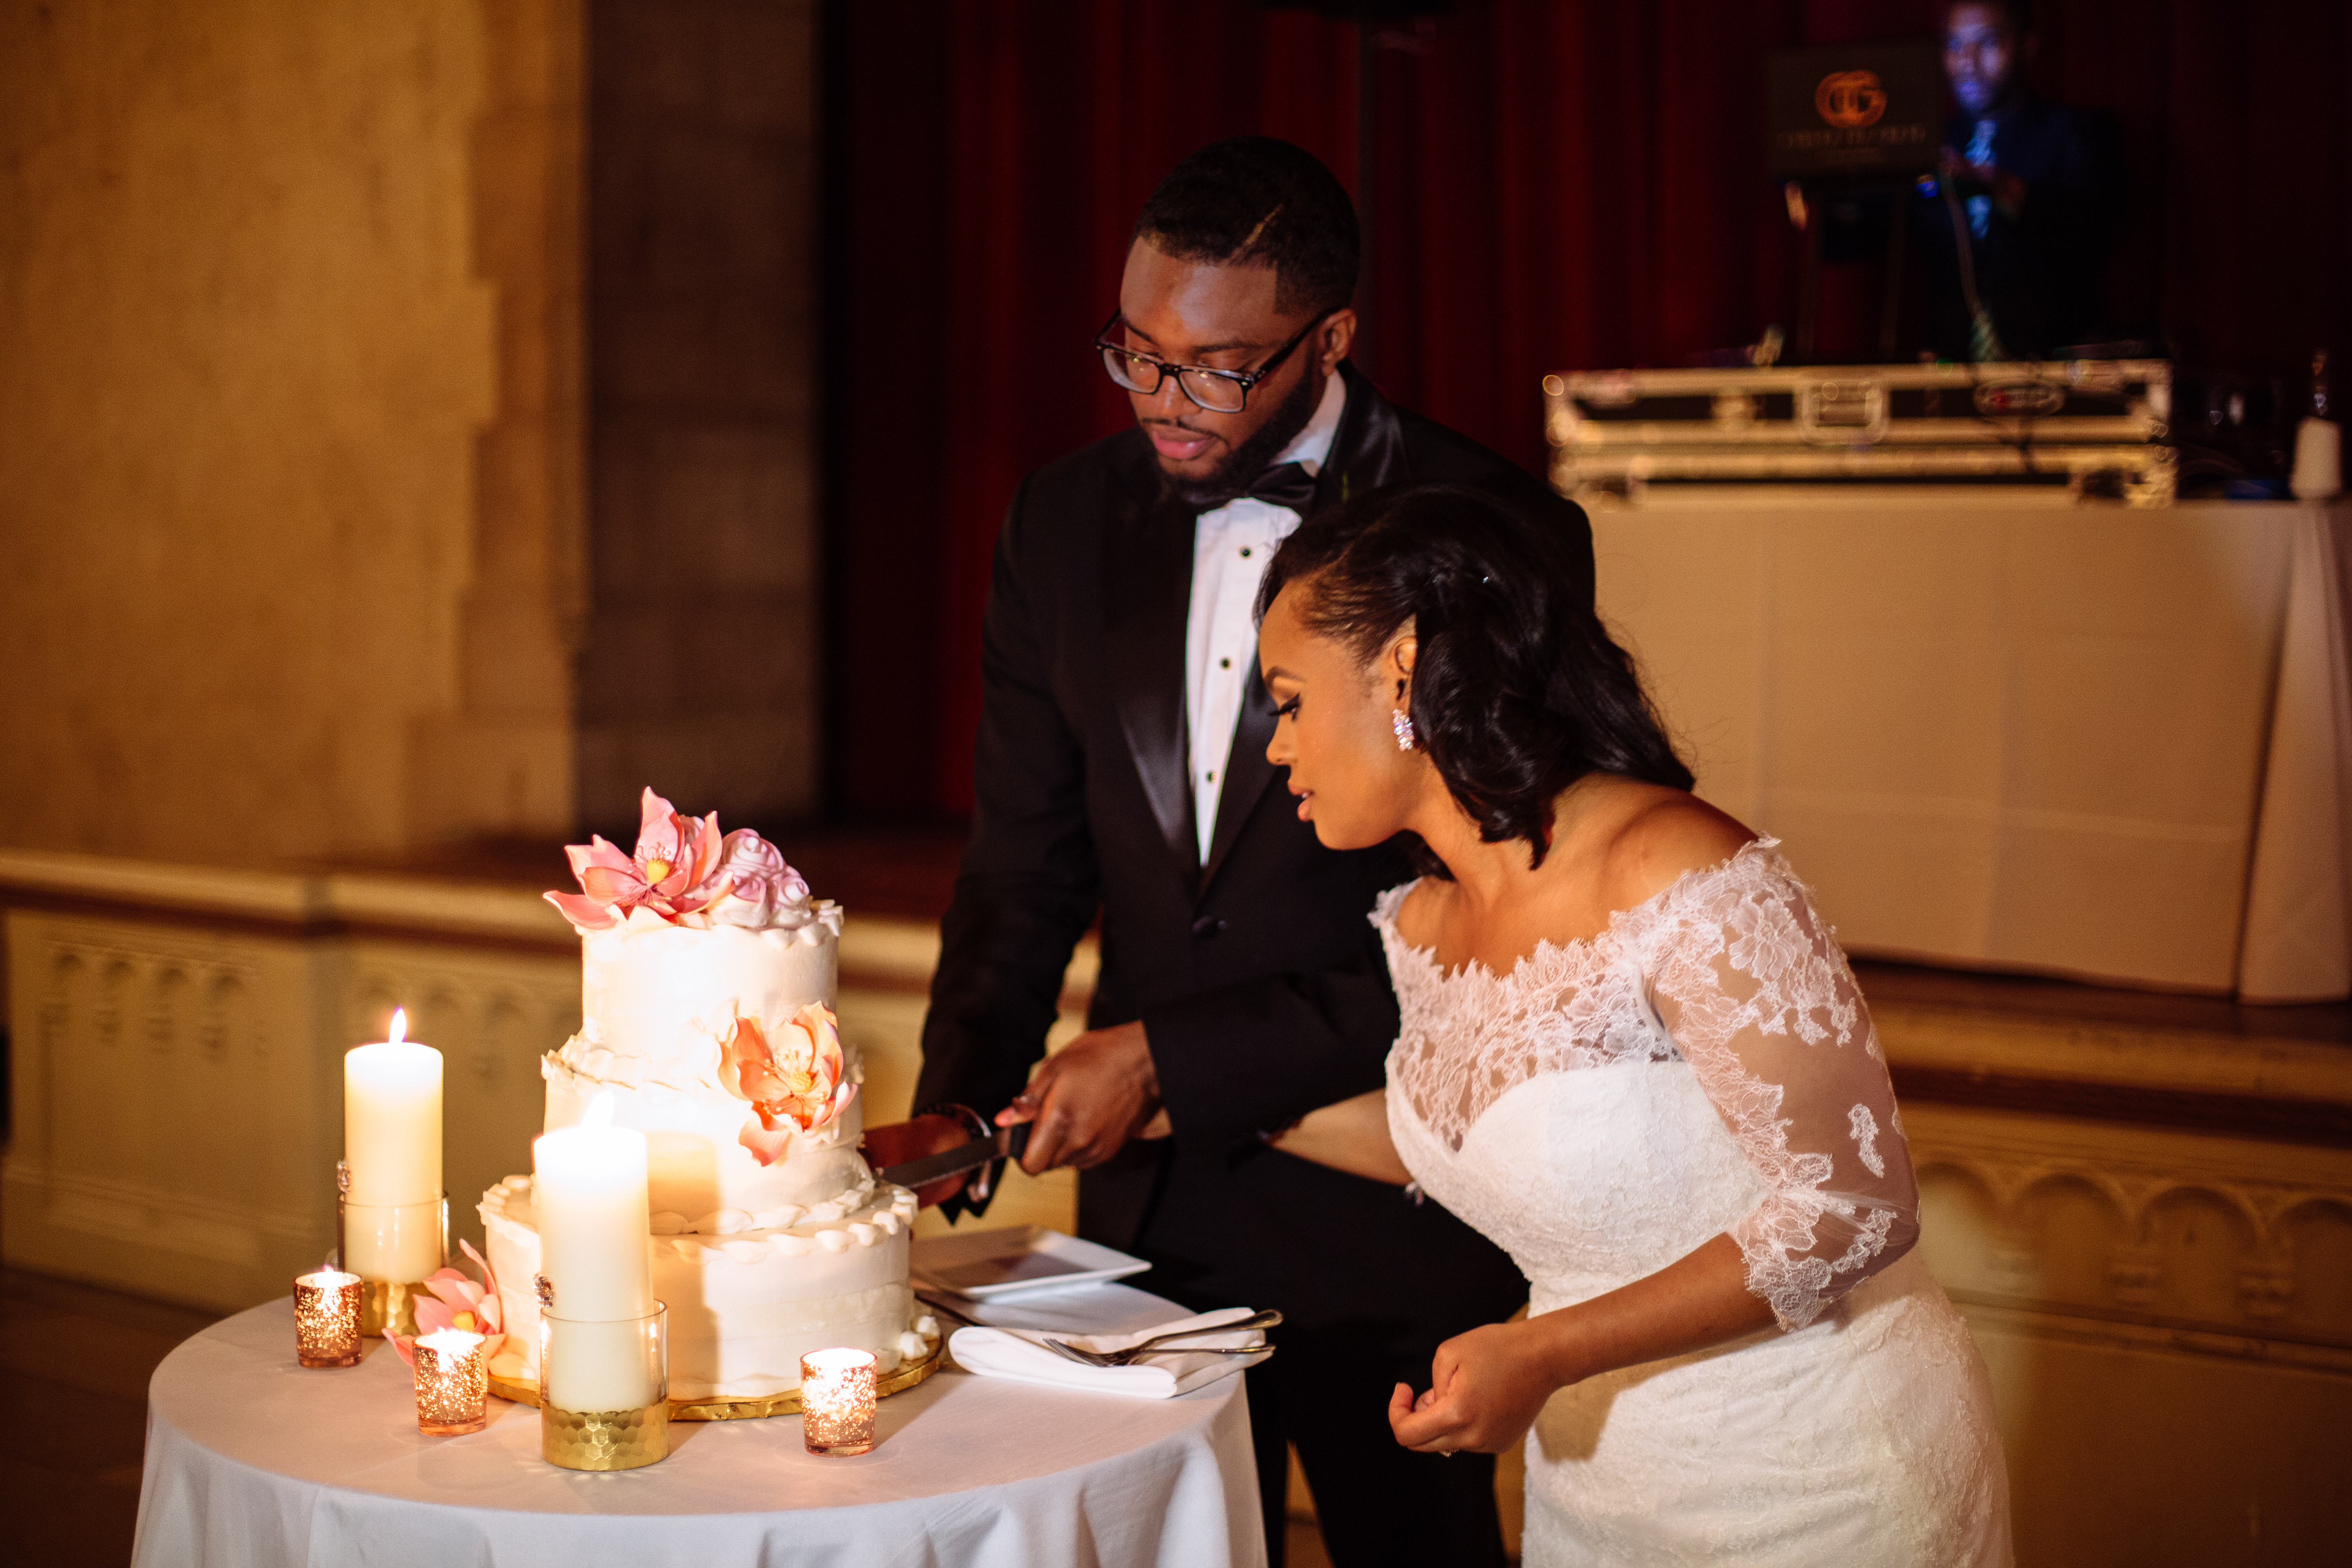 chic black couple cake cutting